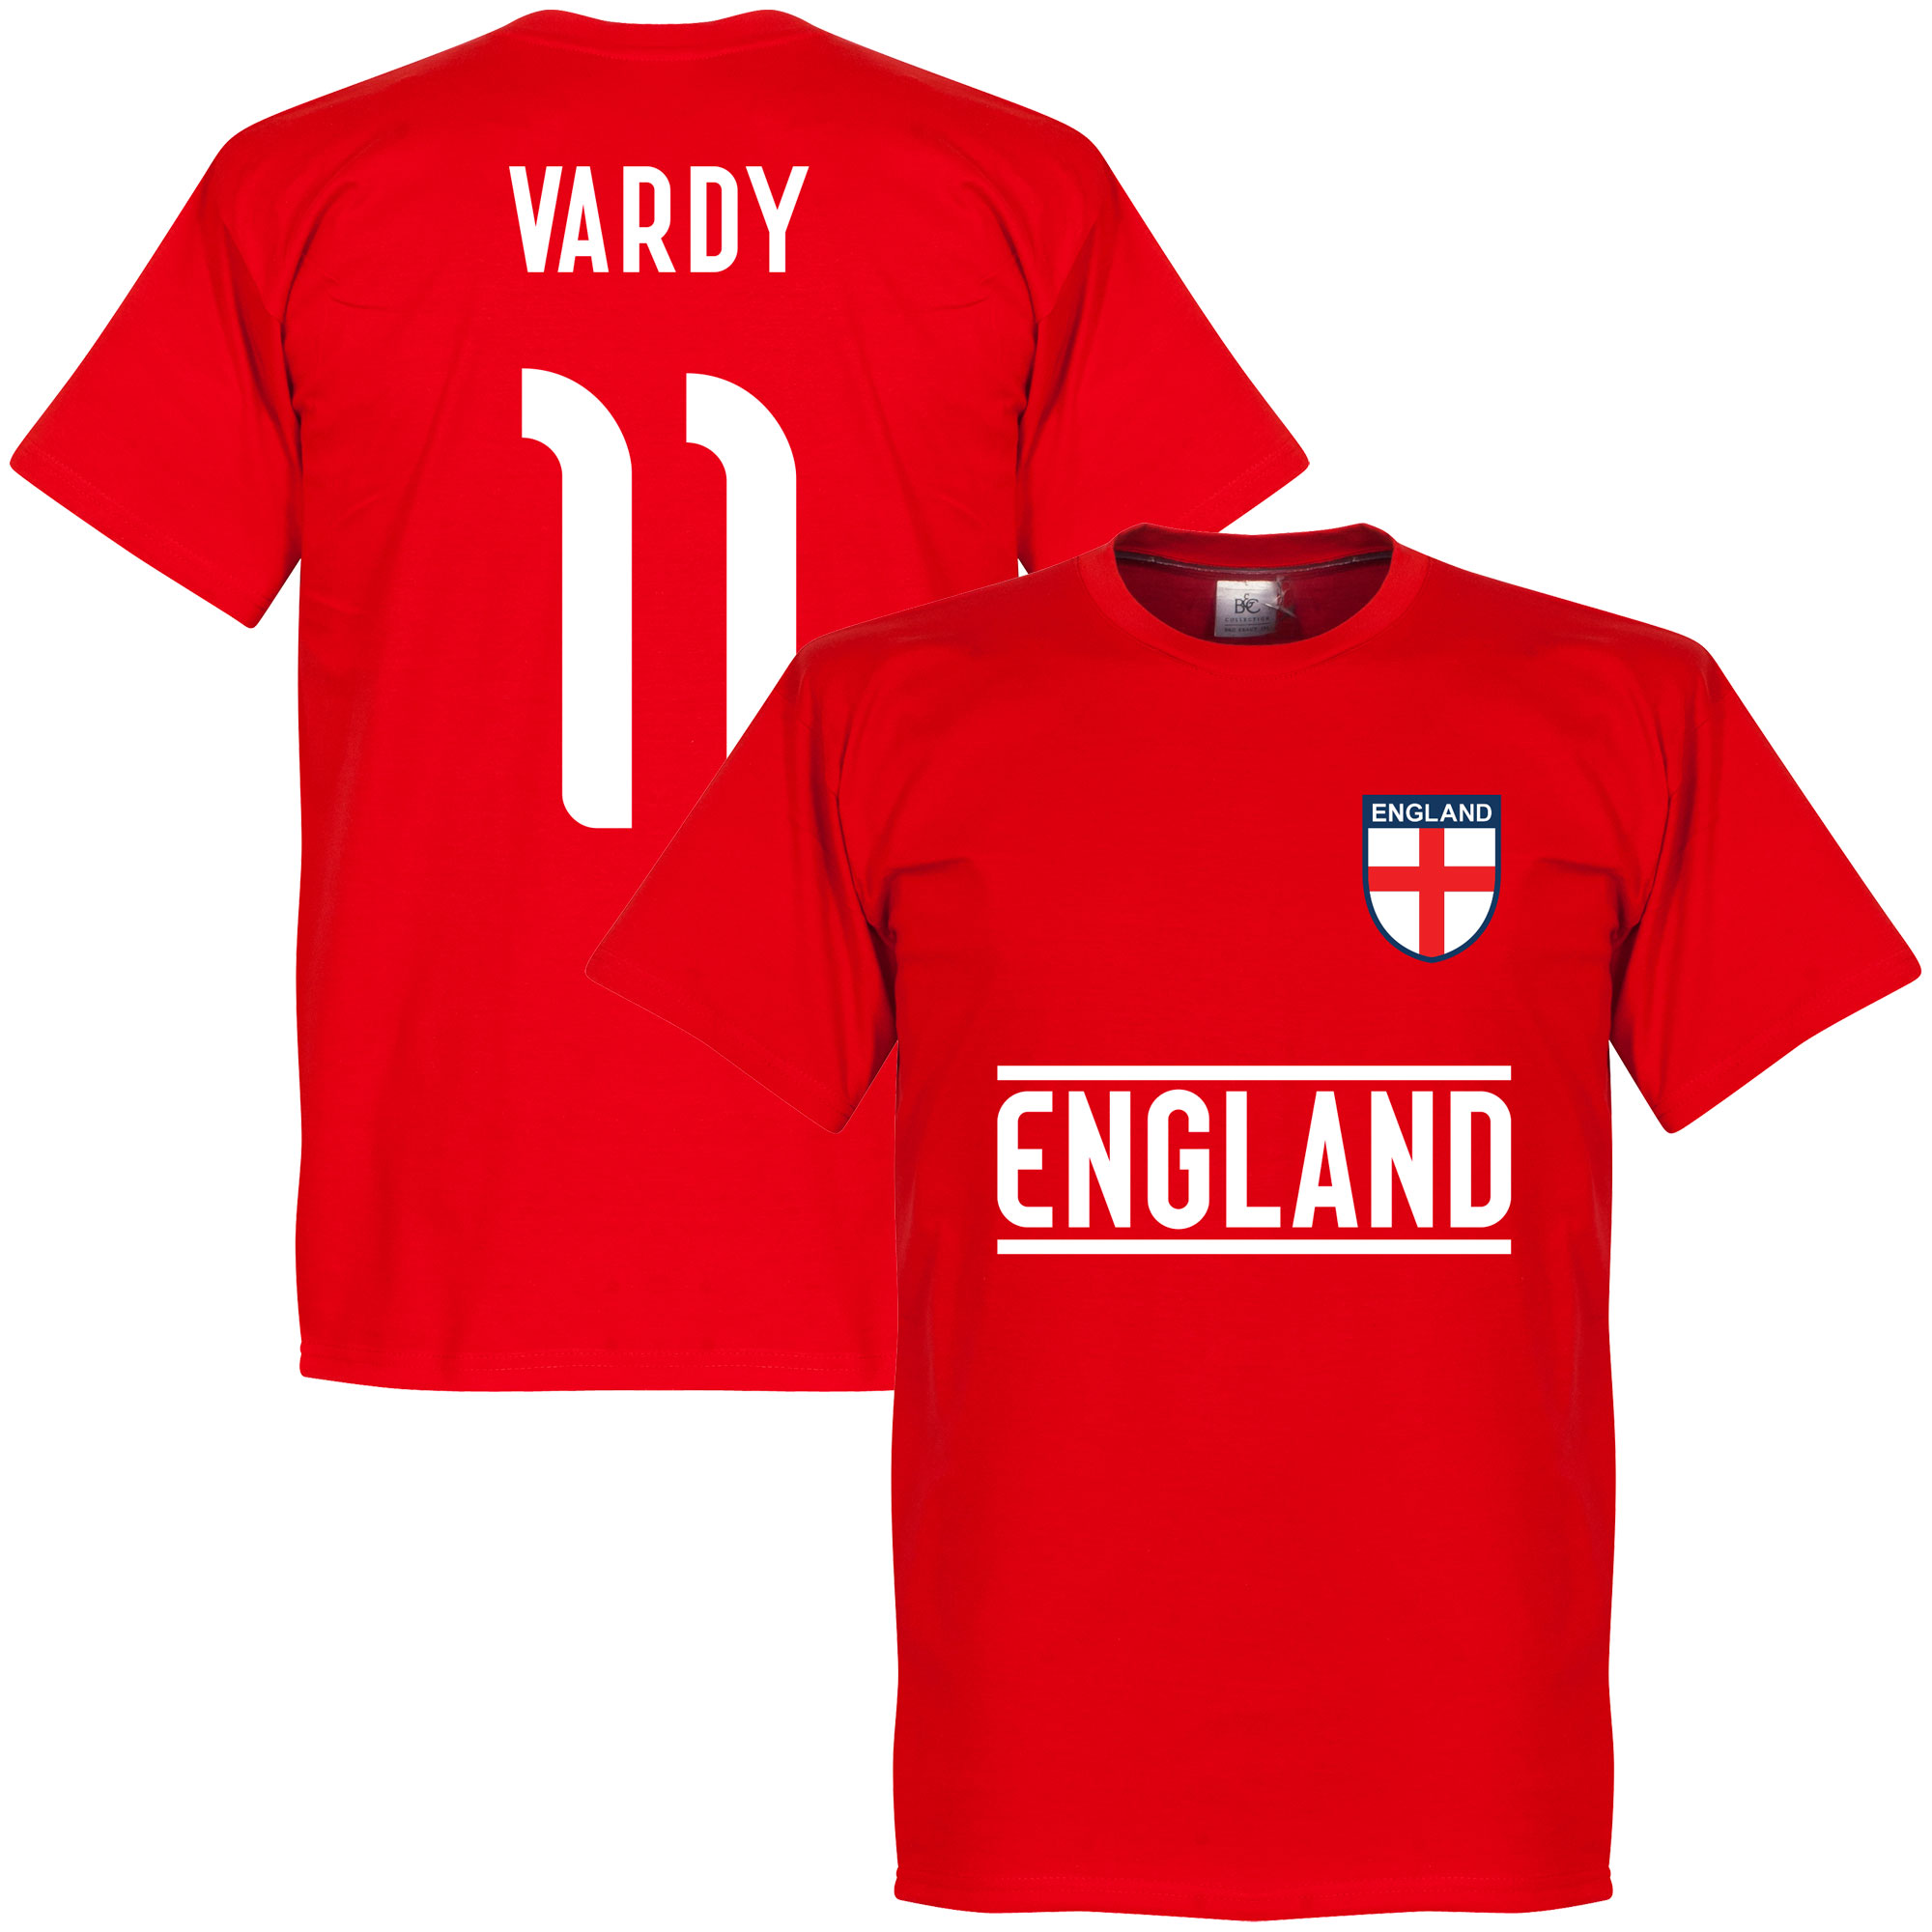 England Vardy Team Tee - Red - XL